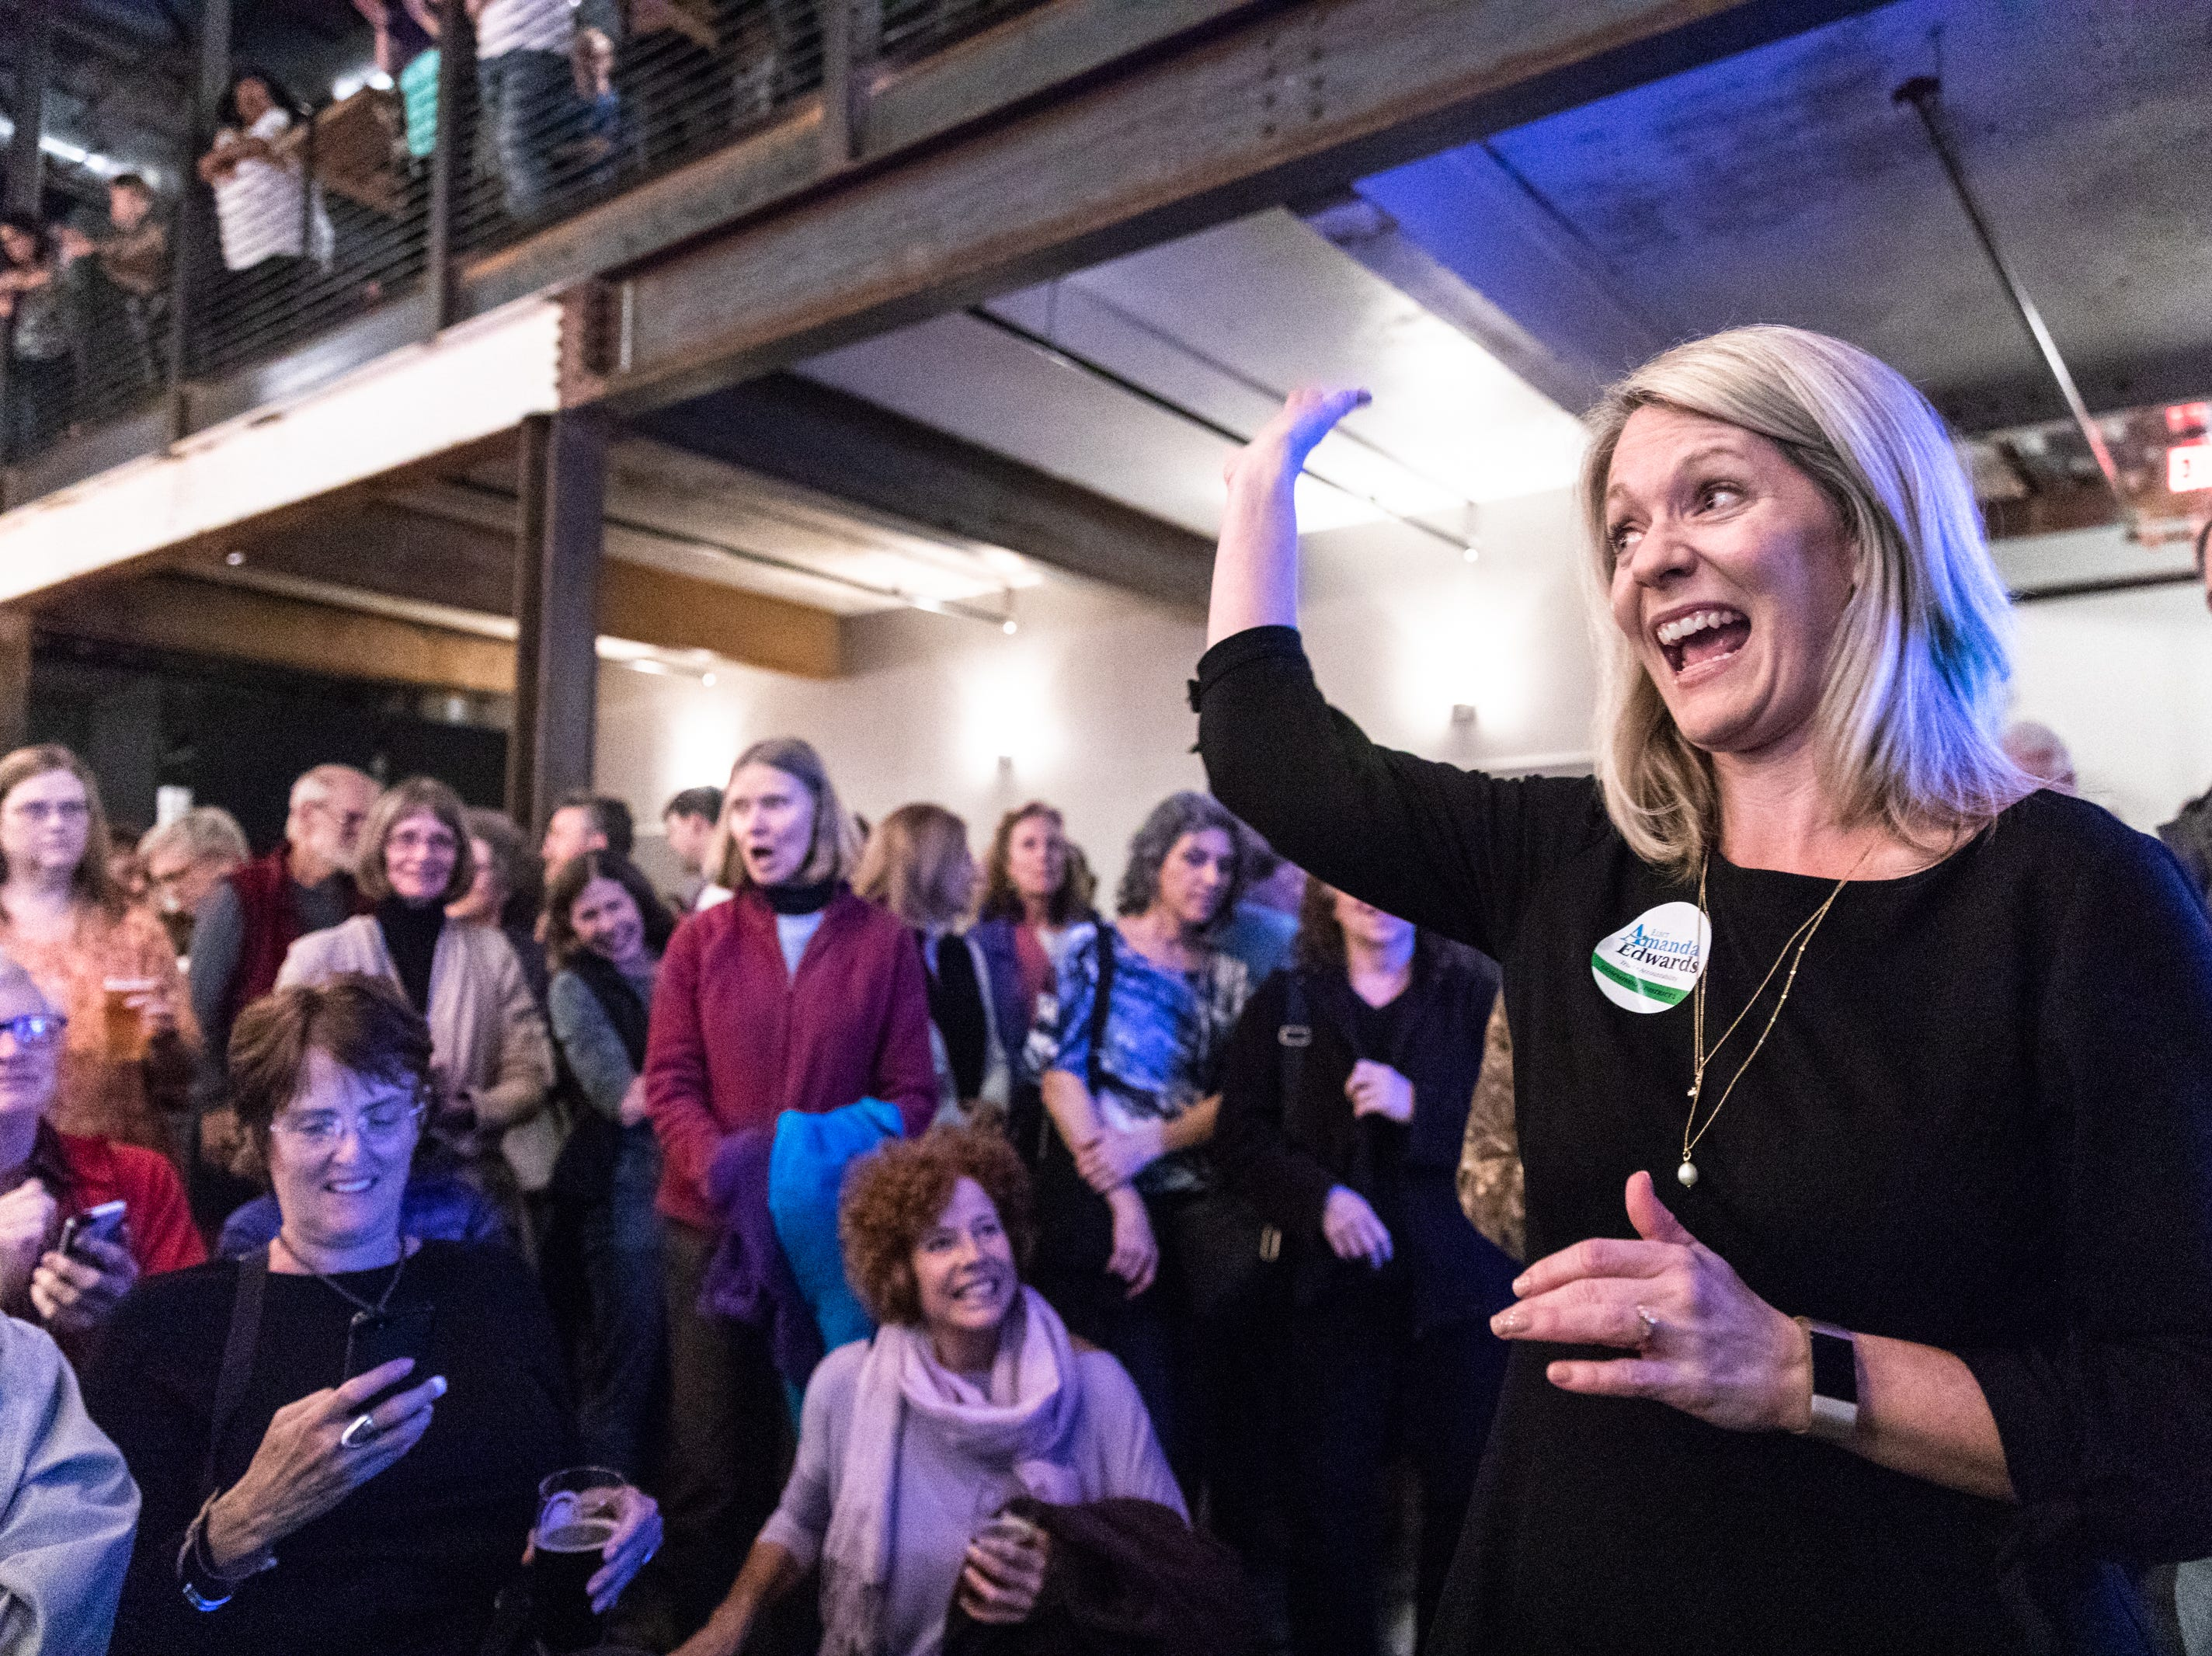 Amanda Edwards waves to supporters at the Buncombe County Democratic Party's election night party at Highland Brewing after winning her seat as the county commissioner for district 2, Nov. 6, 2018.